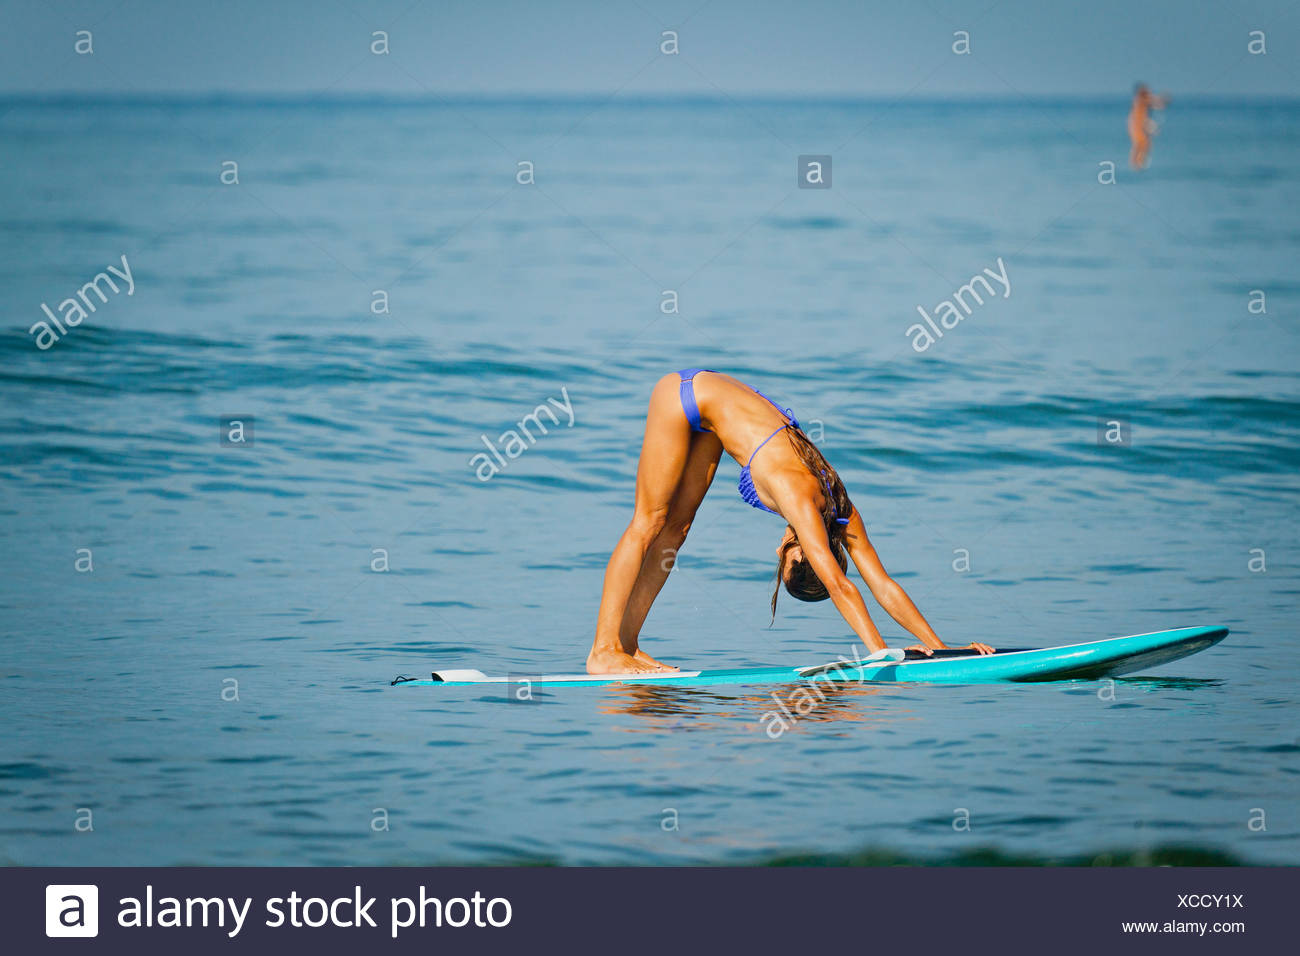 Woman In Yoga Pose On Paddle Board Stock Photo 283026406